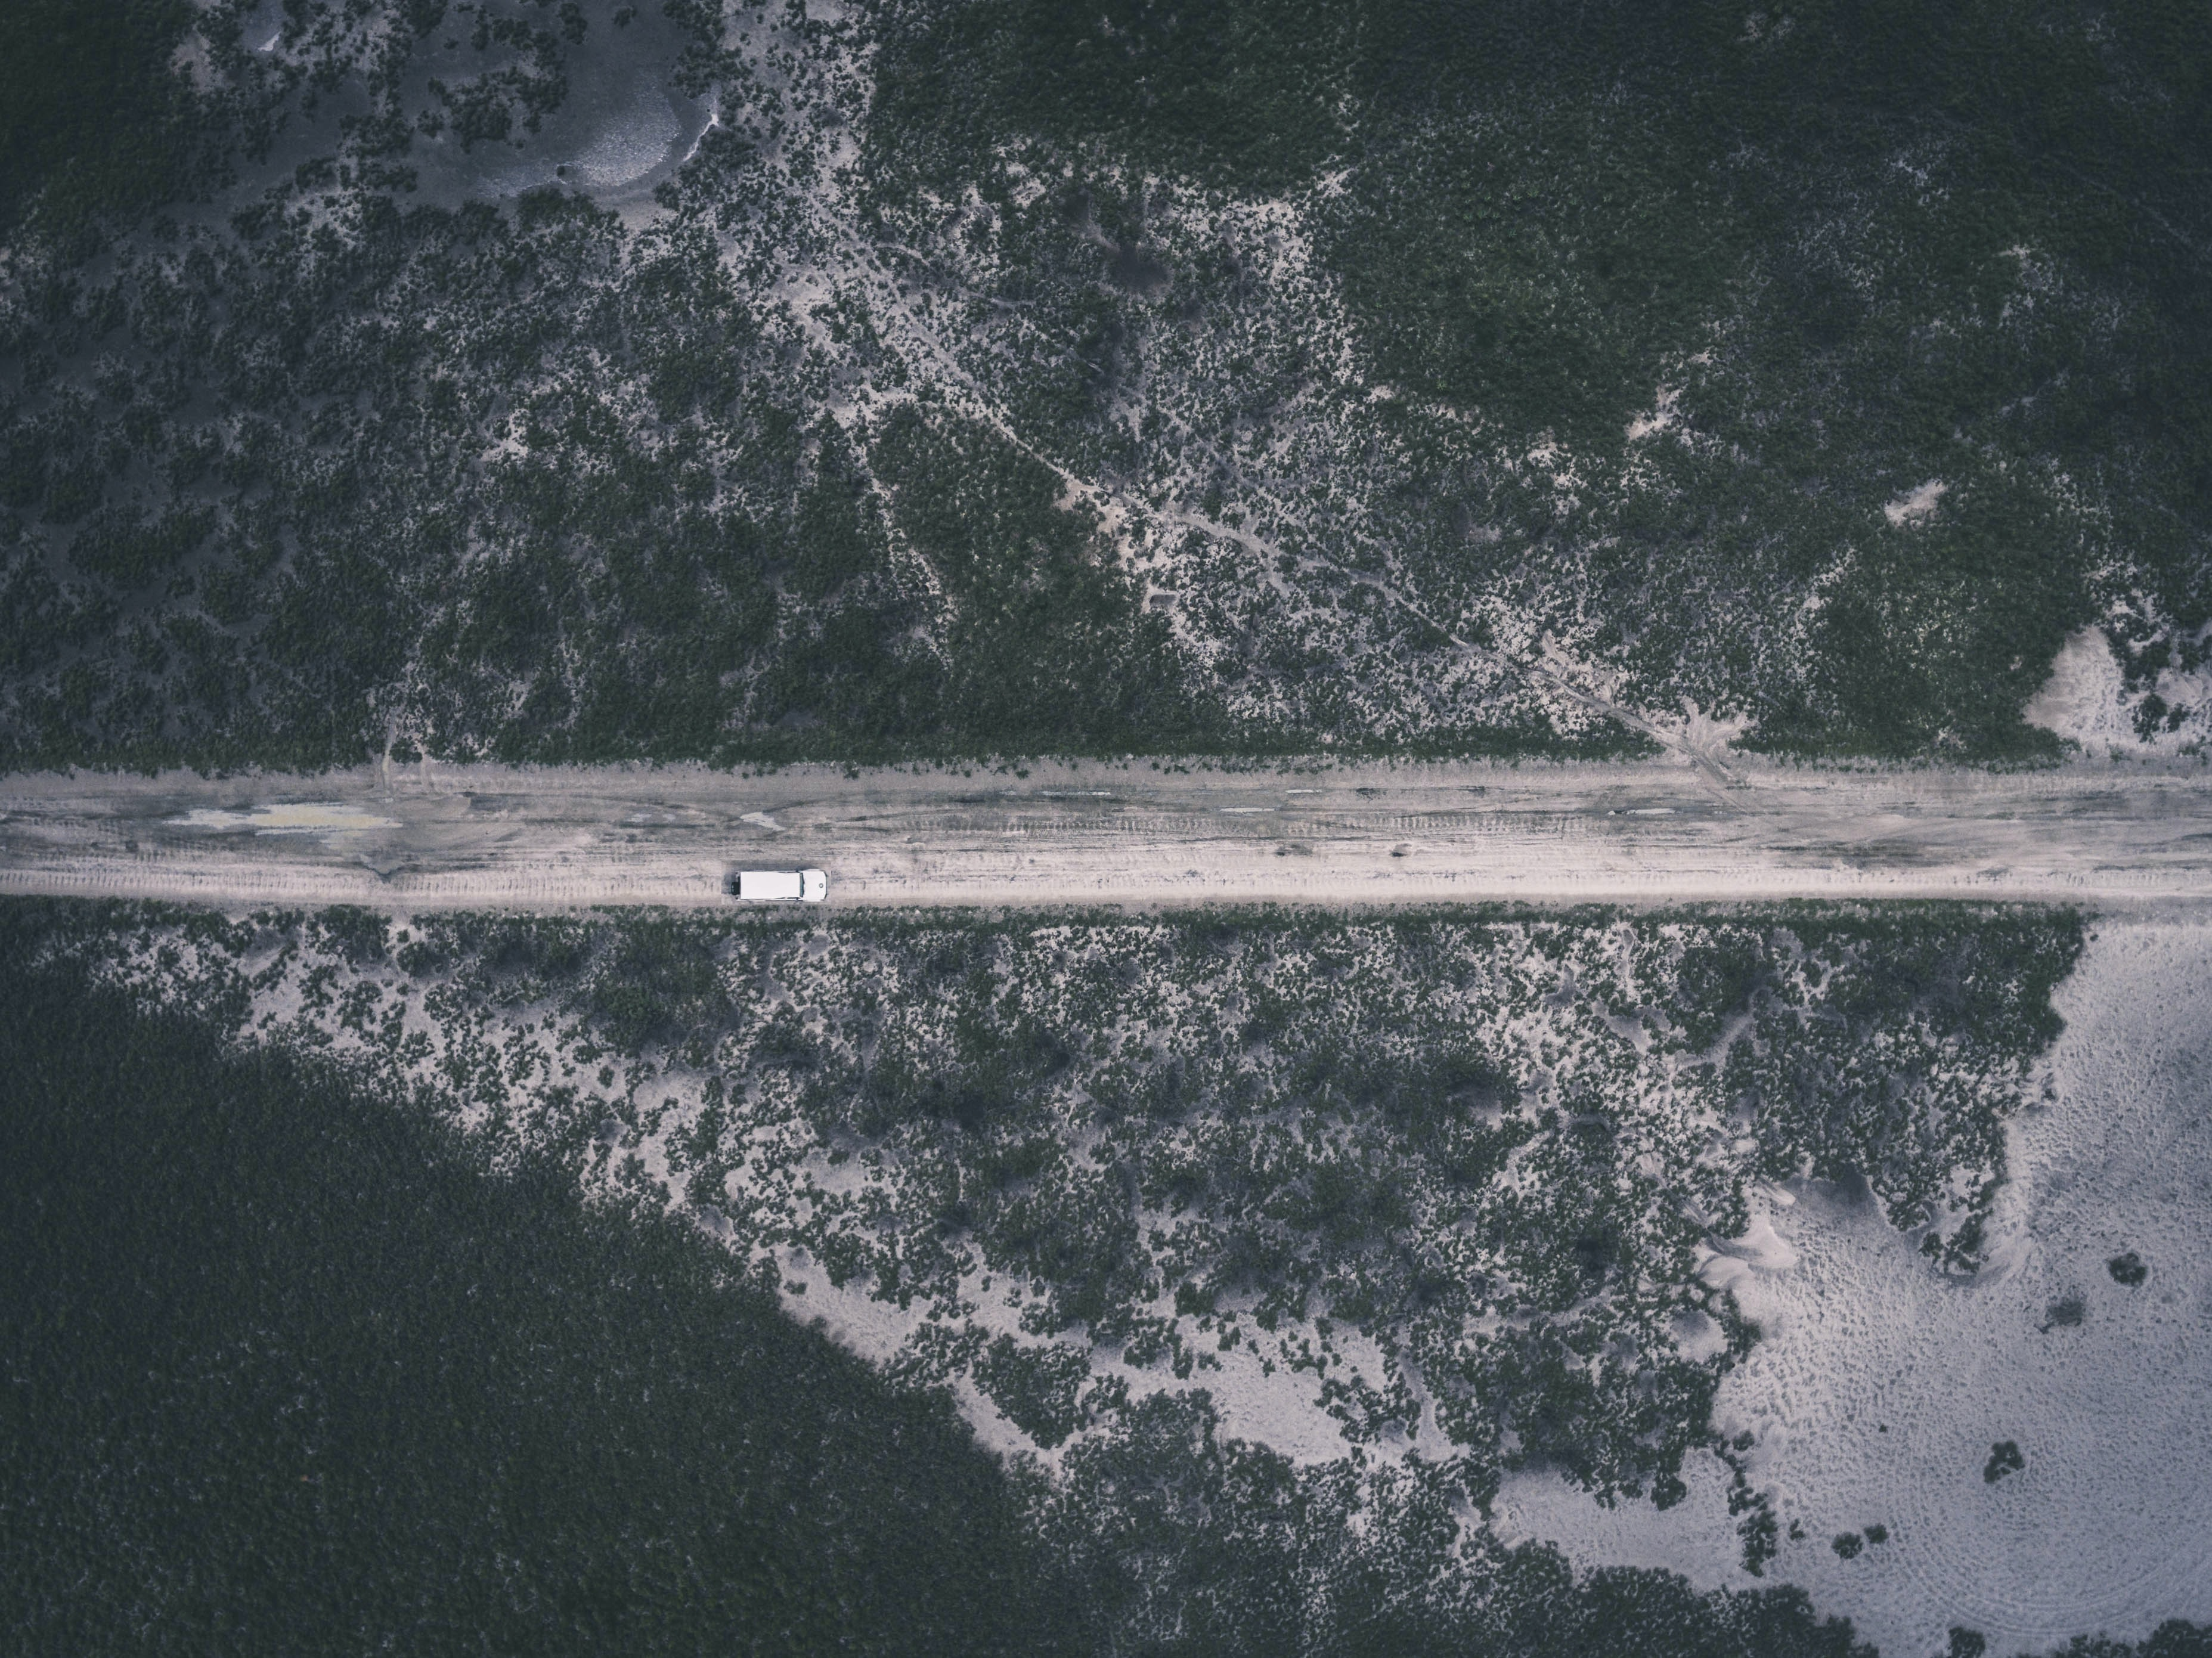 A drone shot of a white car on a dirt road through the wilderness